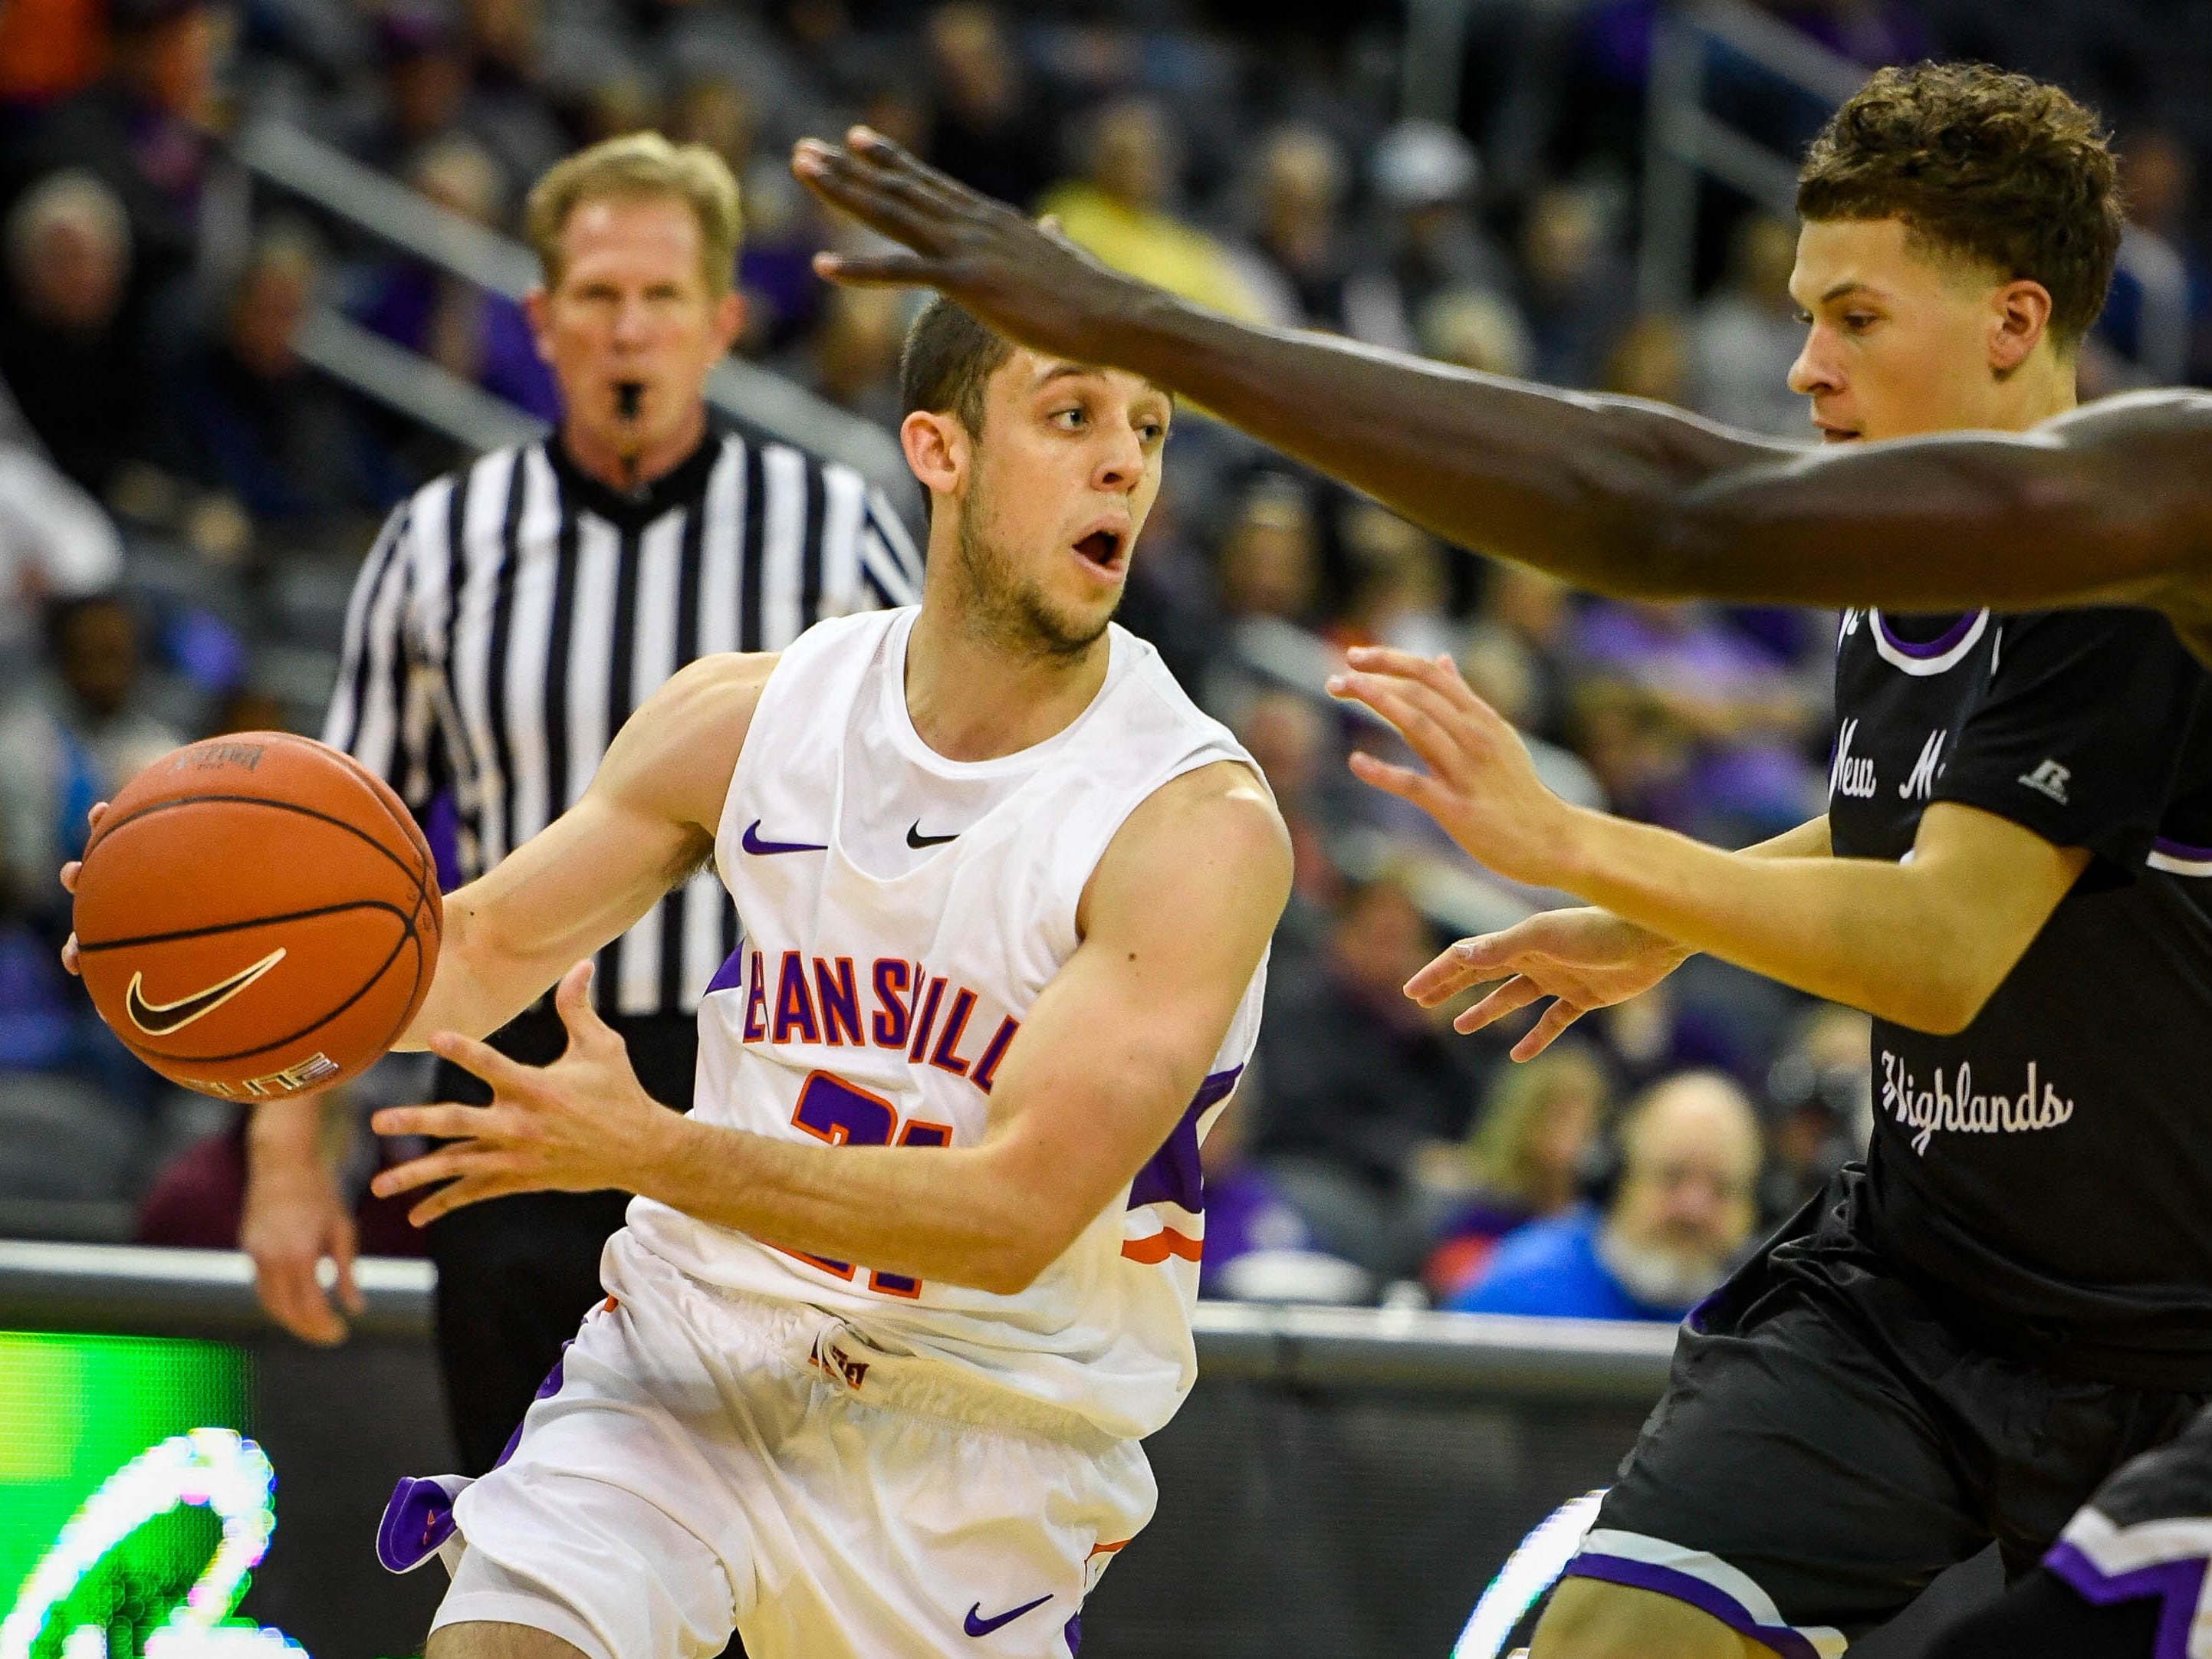 University of Evansville's Shea Feehan (21) look to pass as the University of Evansville Purple Aces play the New Mexico Highlands Cowboys in a exhibition game at the Ford Center Saturday, November 3, 2018.